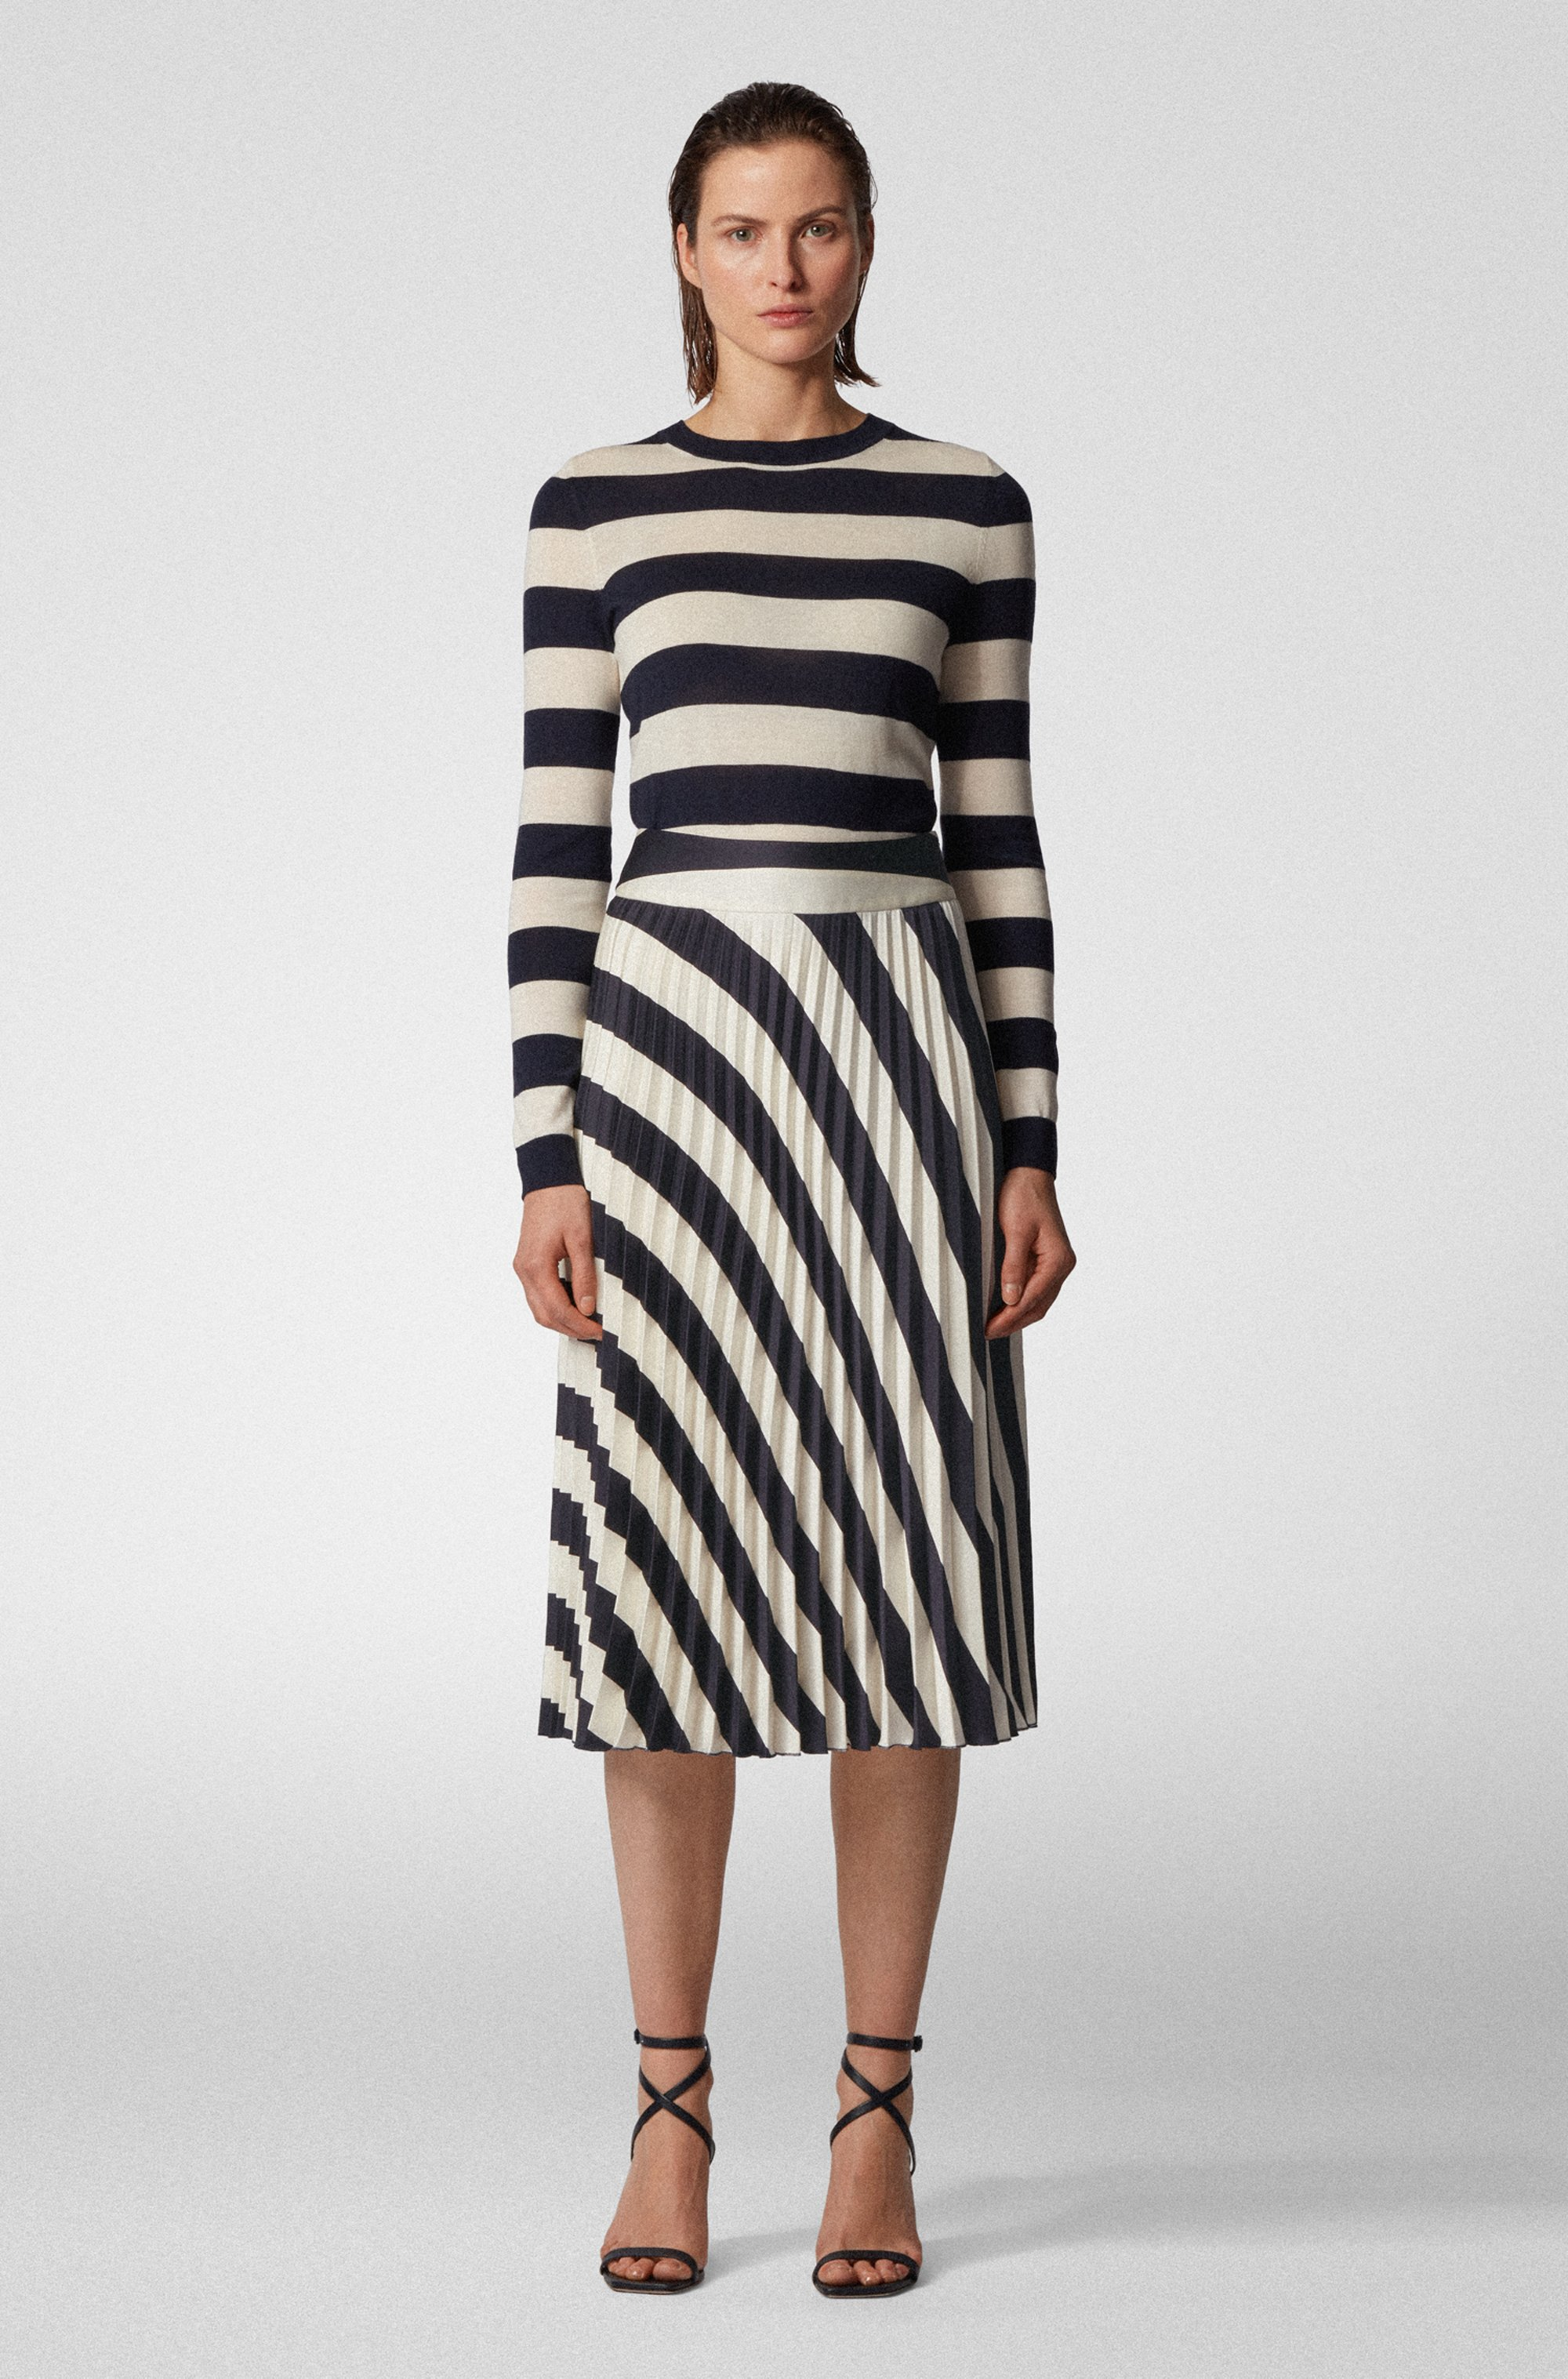 A-line pleated skirt with block-stripe print